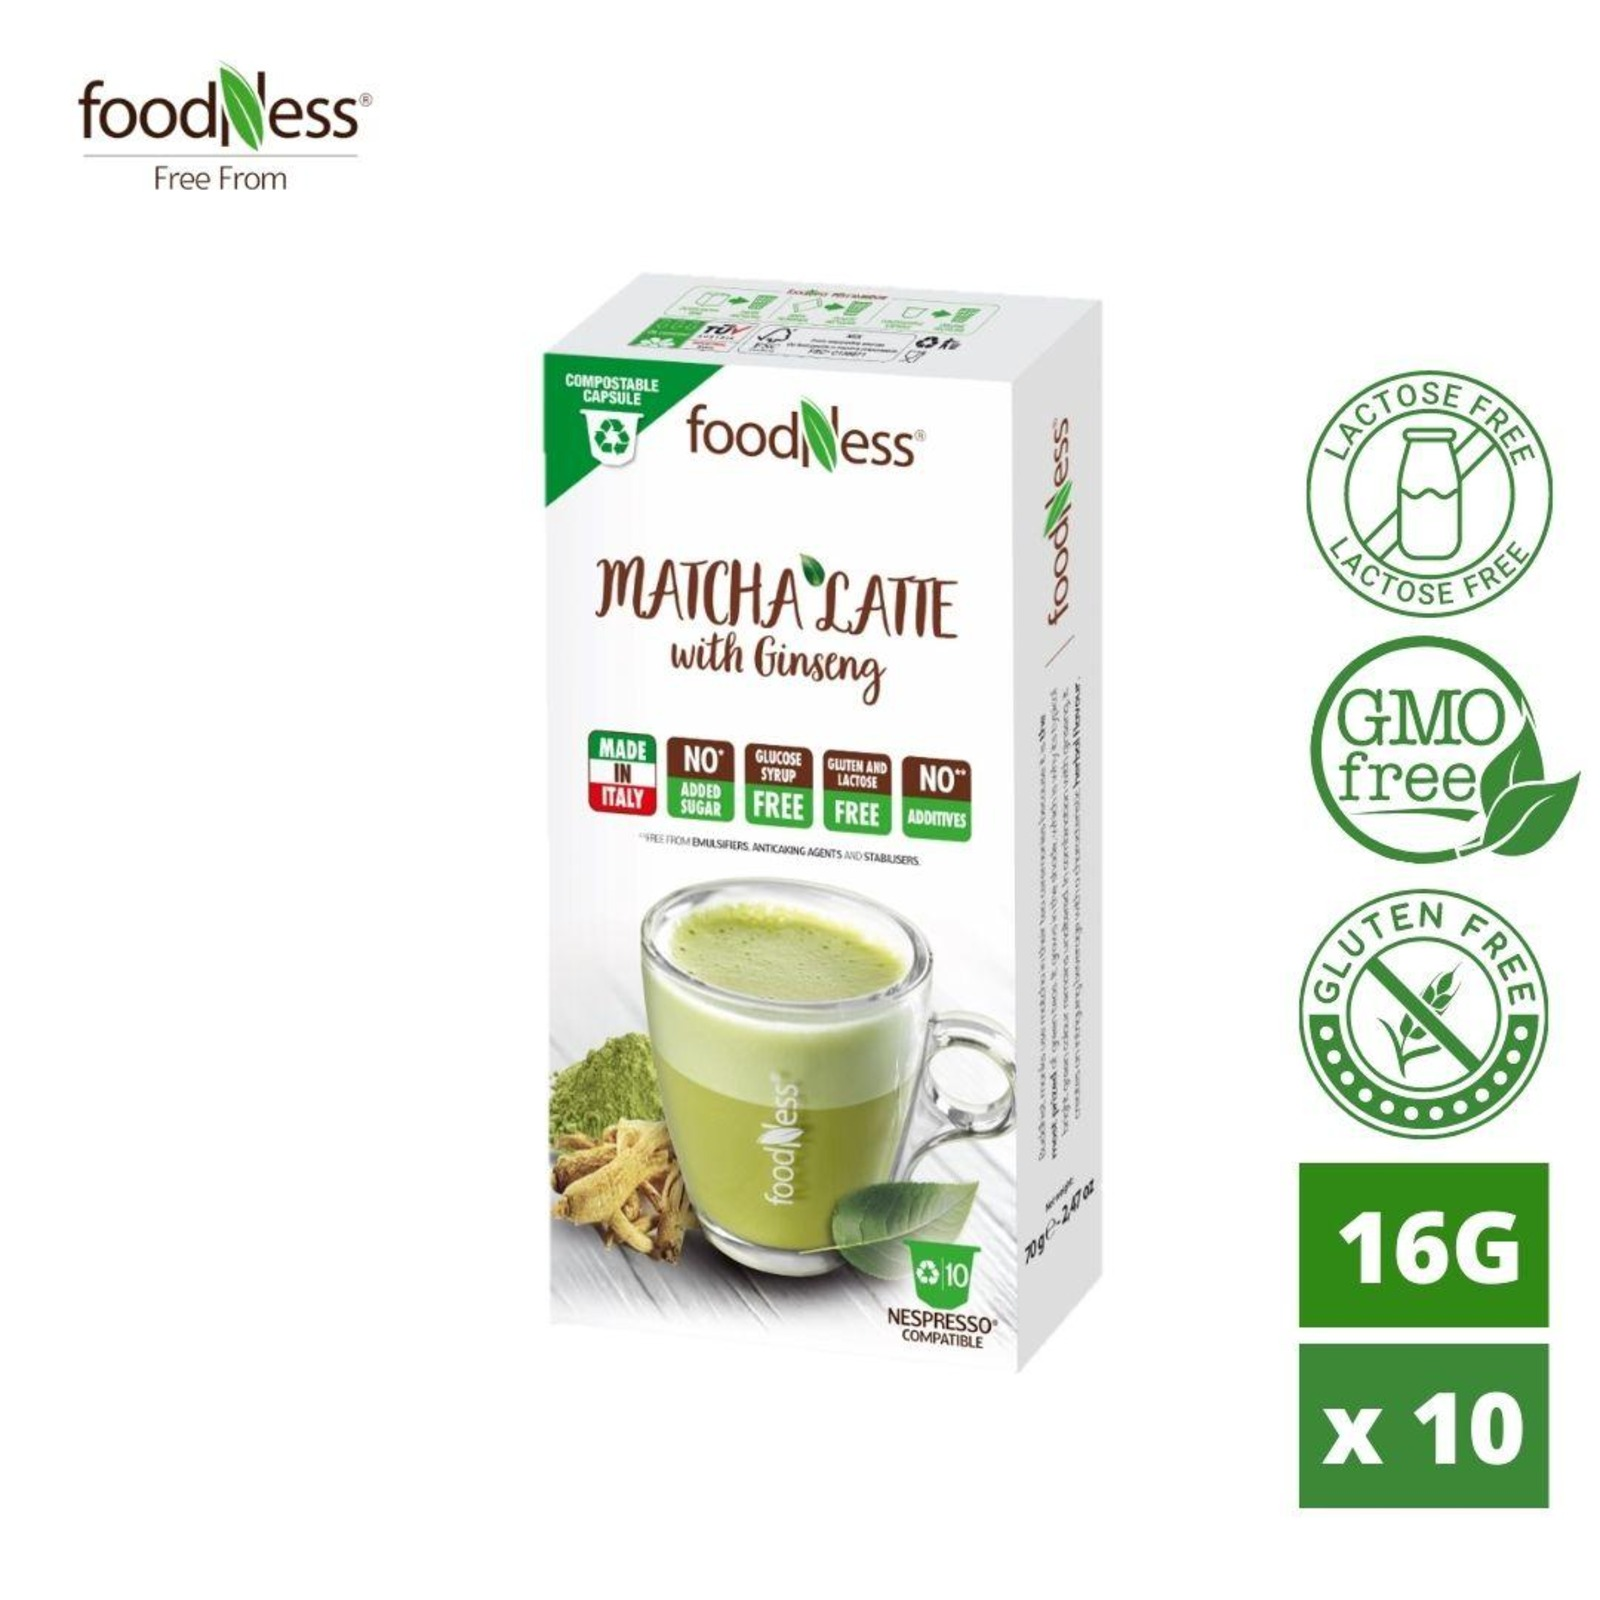 Foodness Nesp Matcha Latte With Ginseng Box Of 10 Capsules Ntuc Fairprice